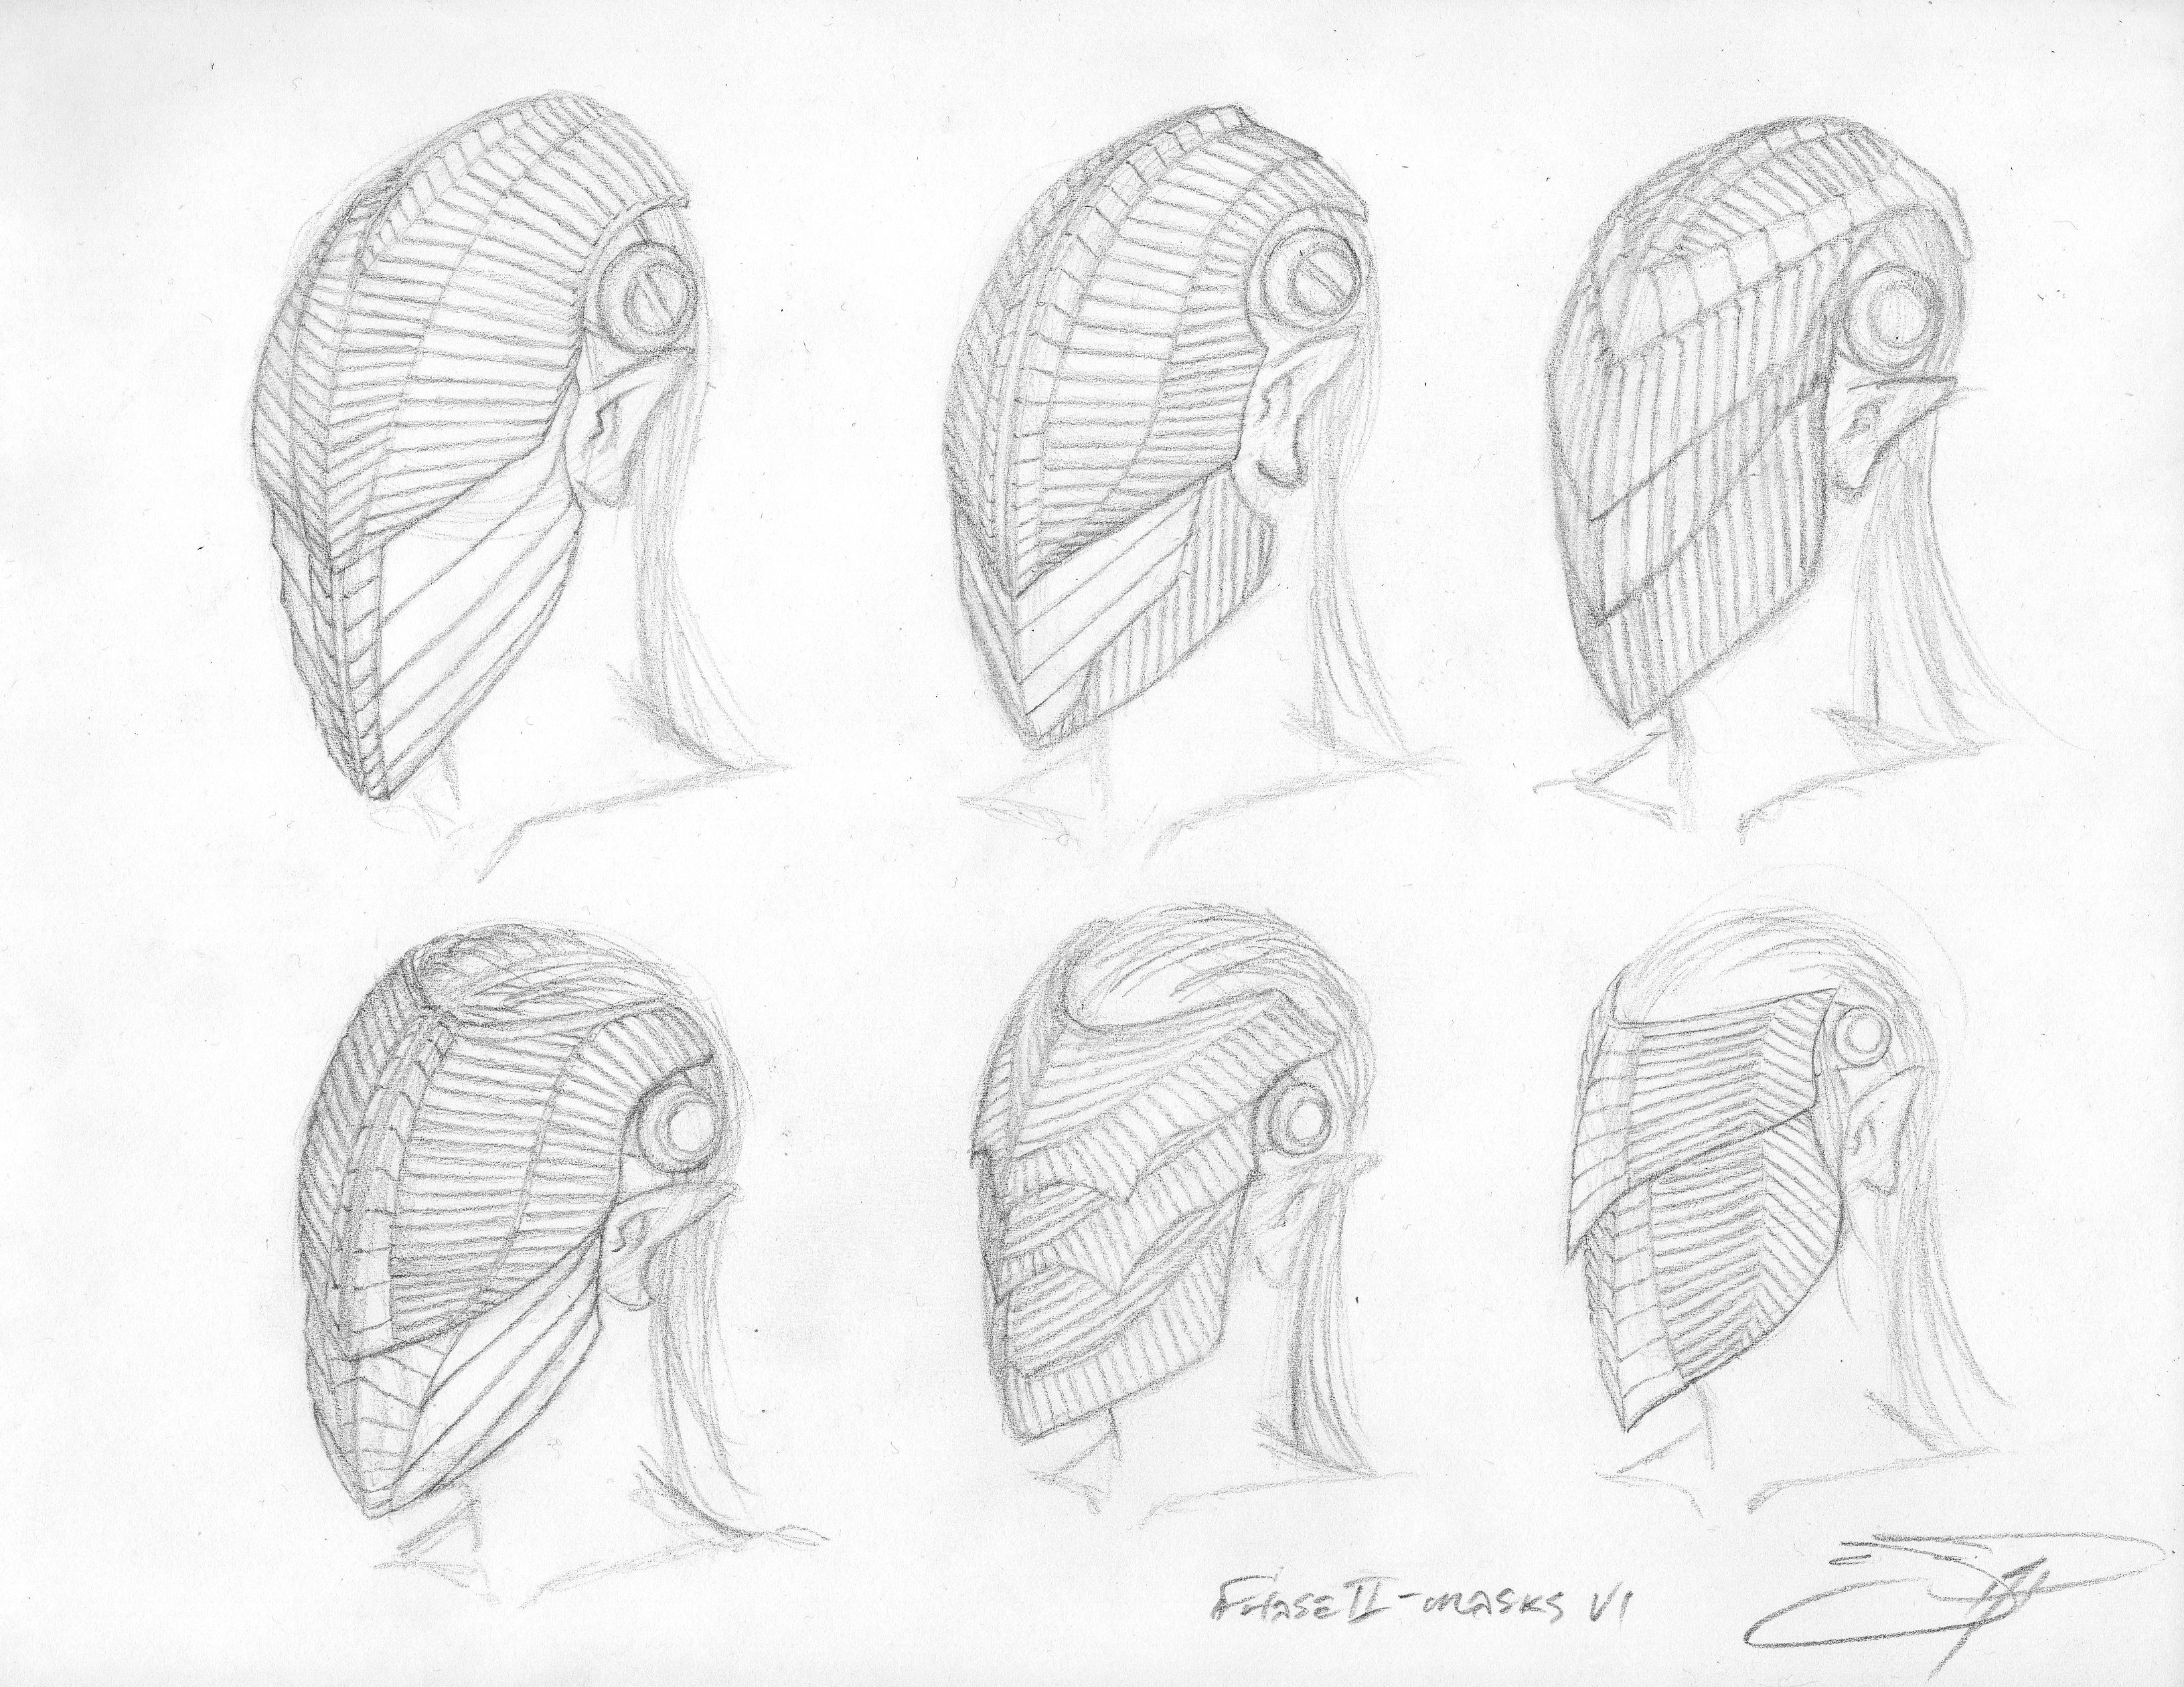 3 Sith Lord Sketches - Phase 2 Mask VI b 033